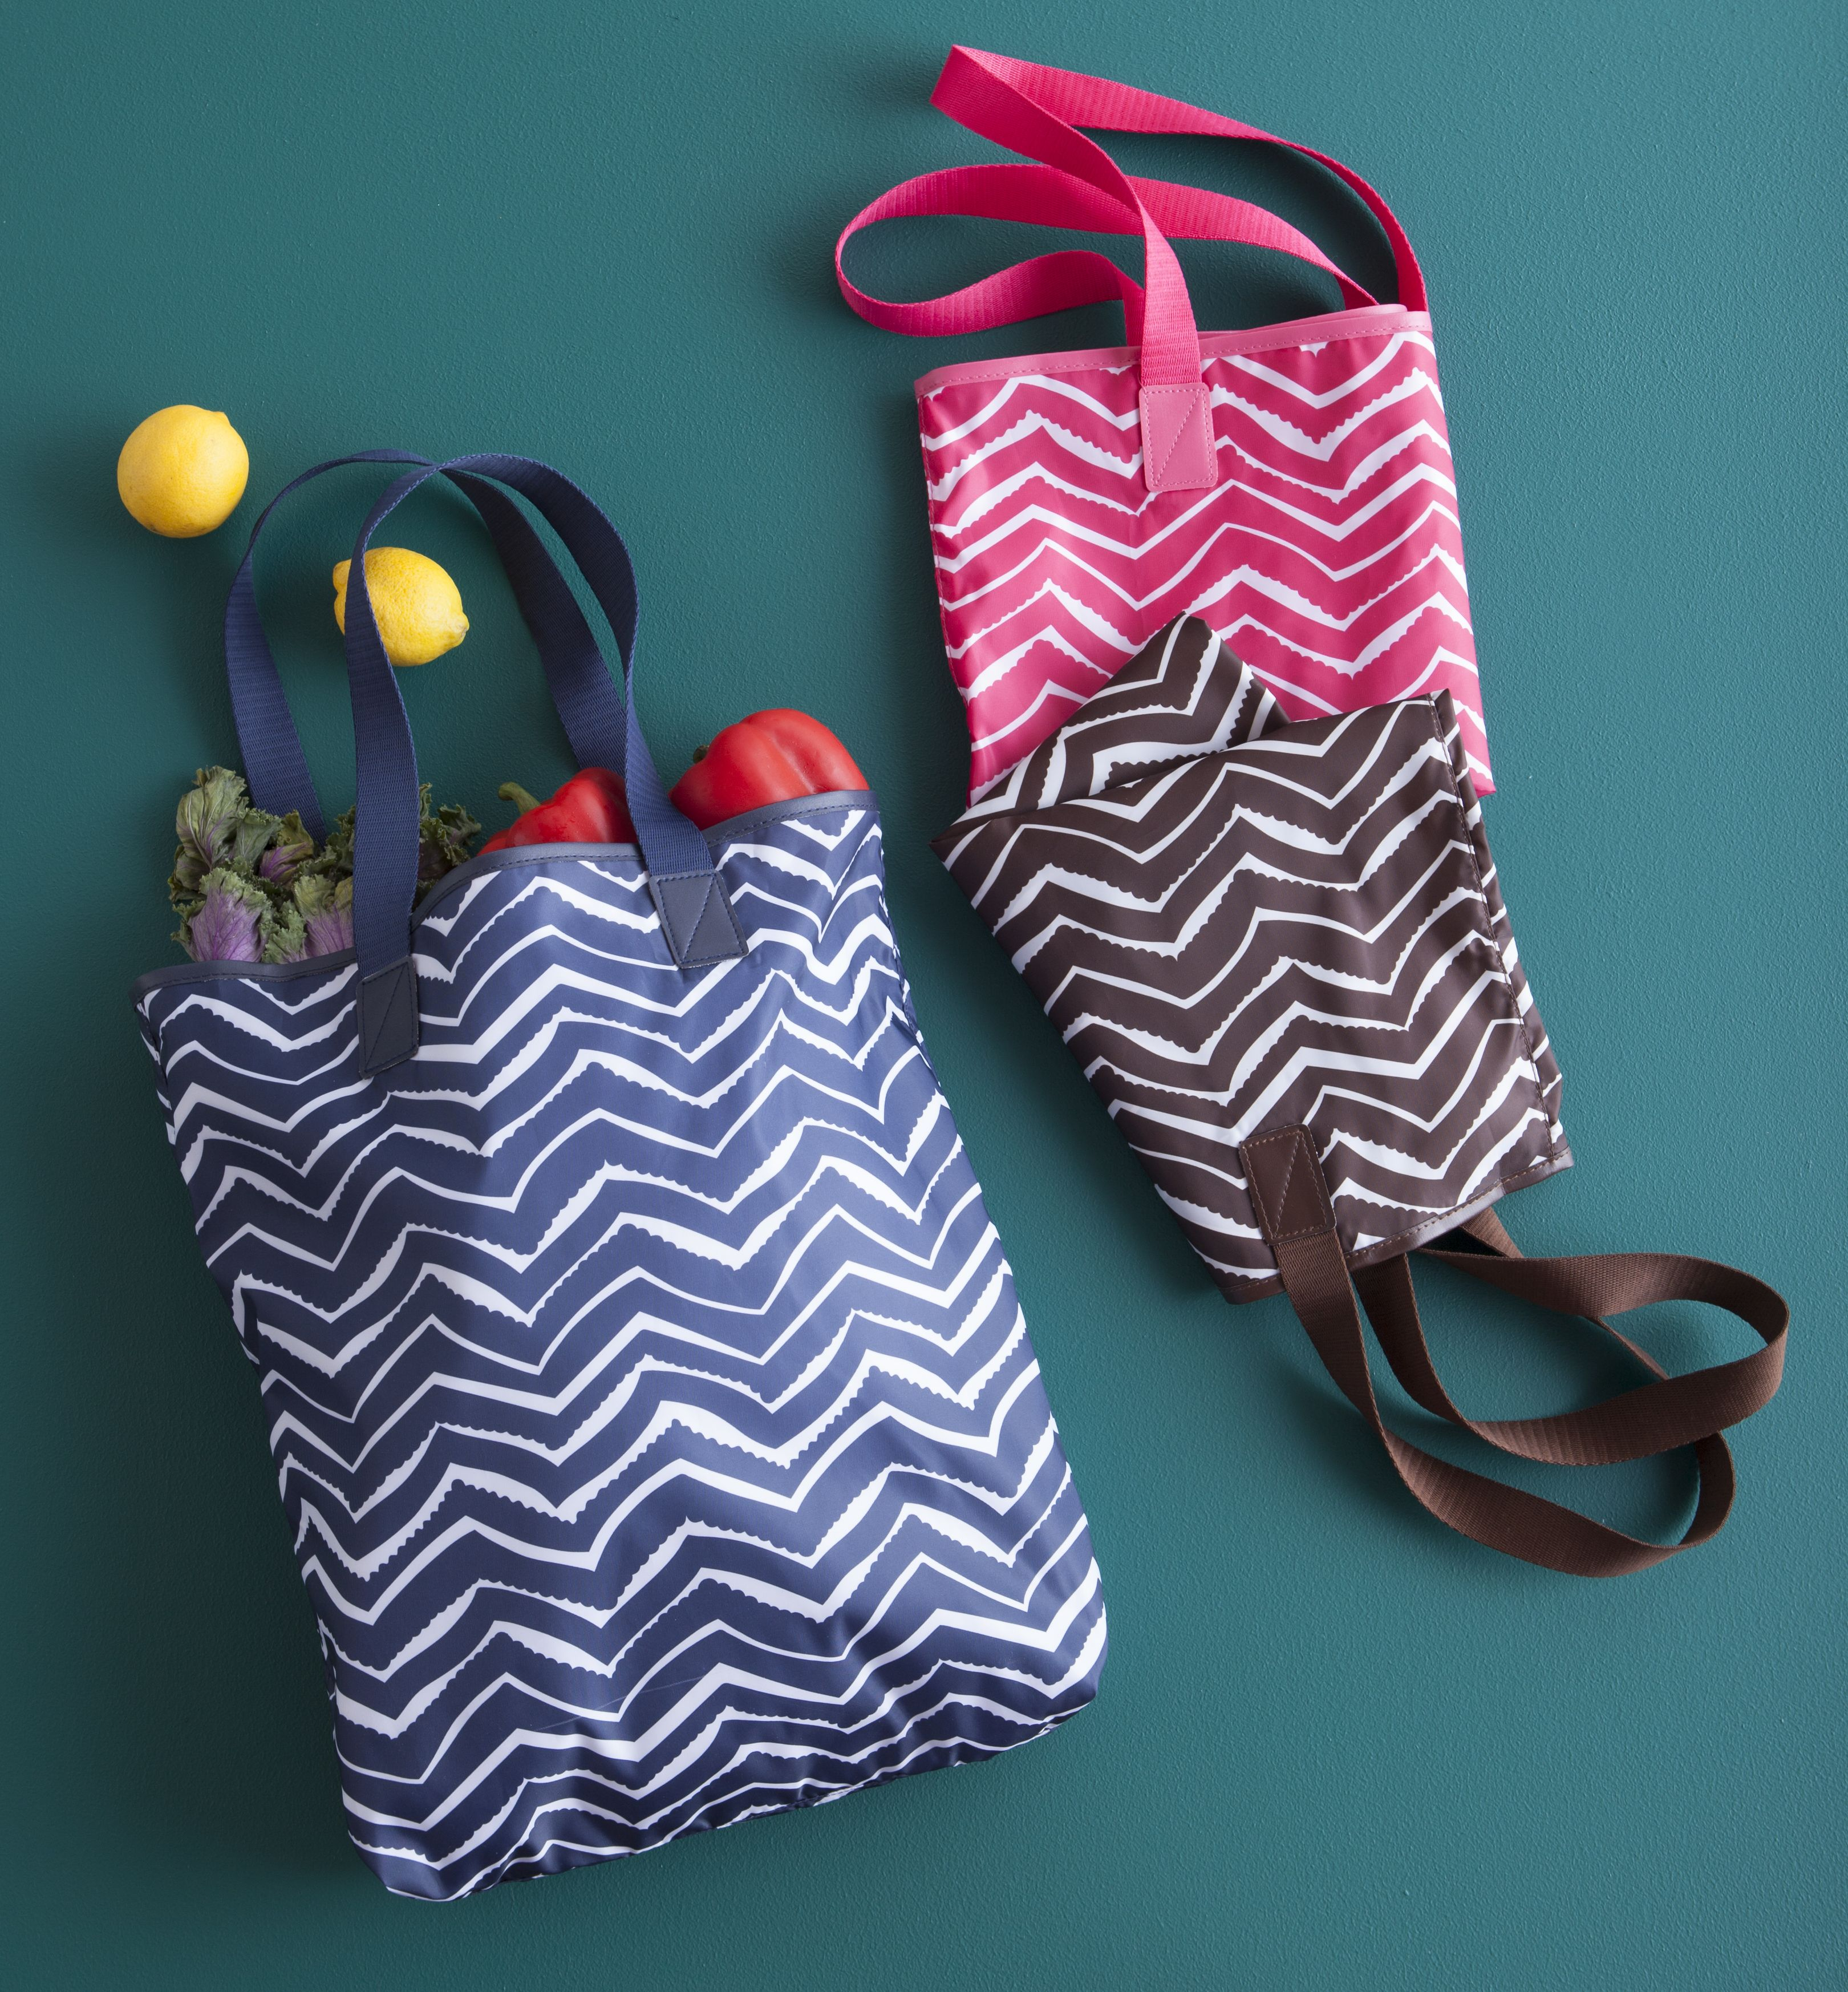 07985528d14b The market tote is part of the Mixed Bag Designs collection of reusable  shopping bags and totes